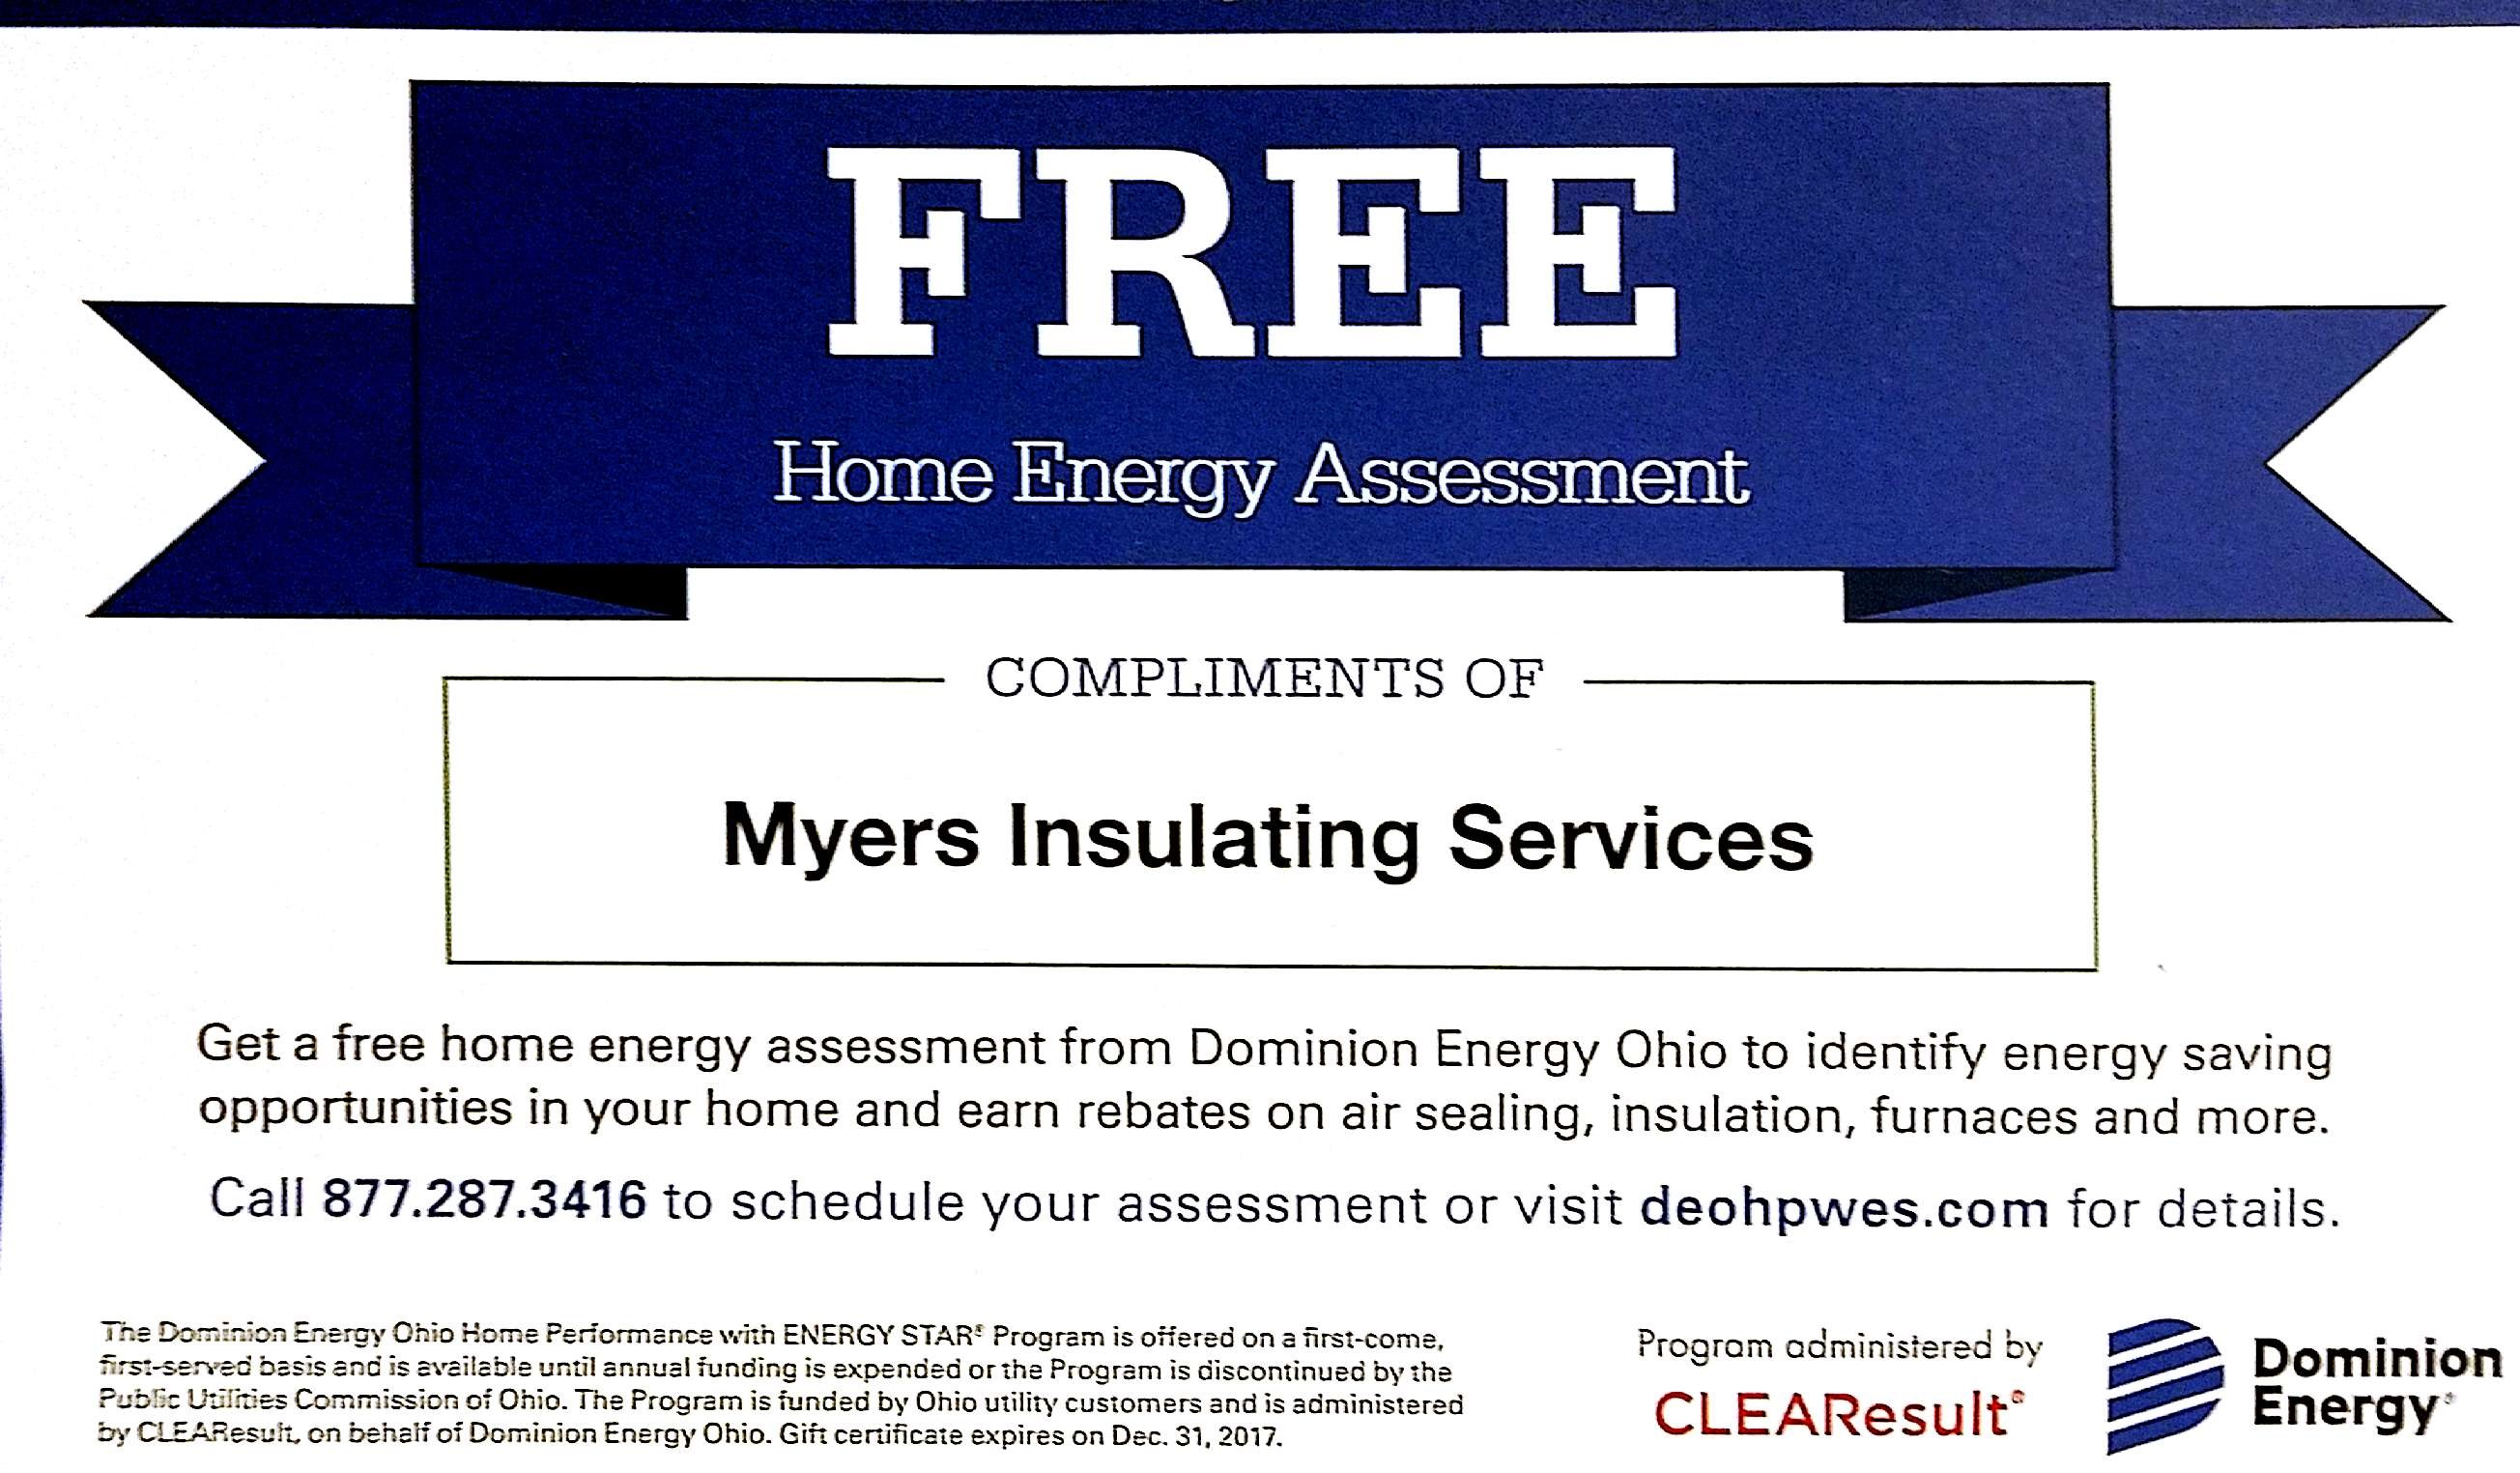 Free home energy audit with dominion energy in cleveland area for Insulate your home for free